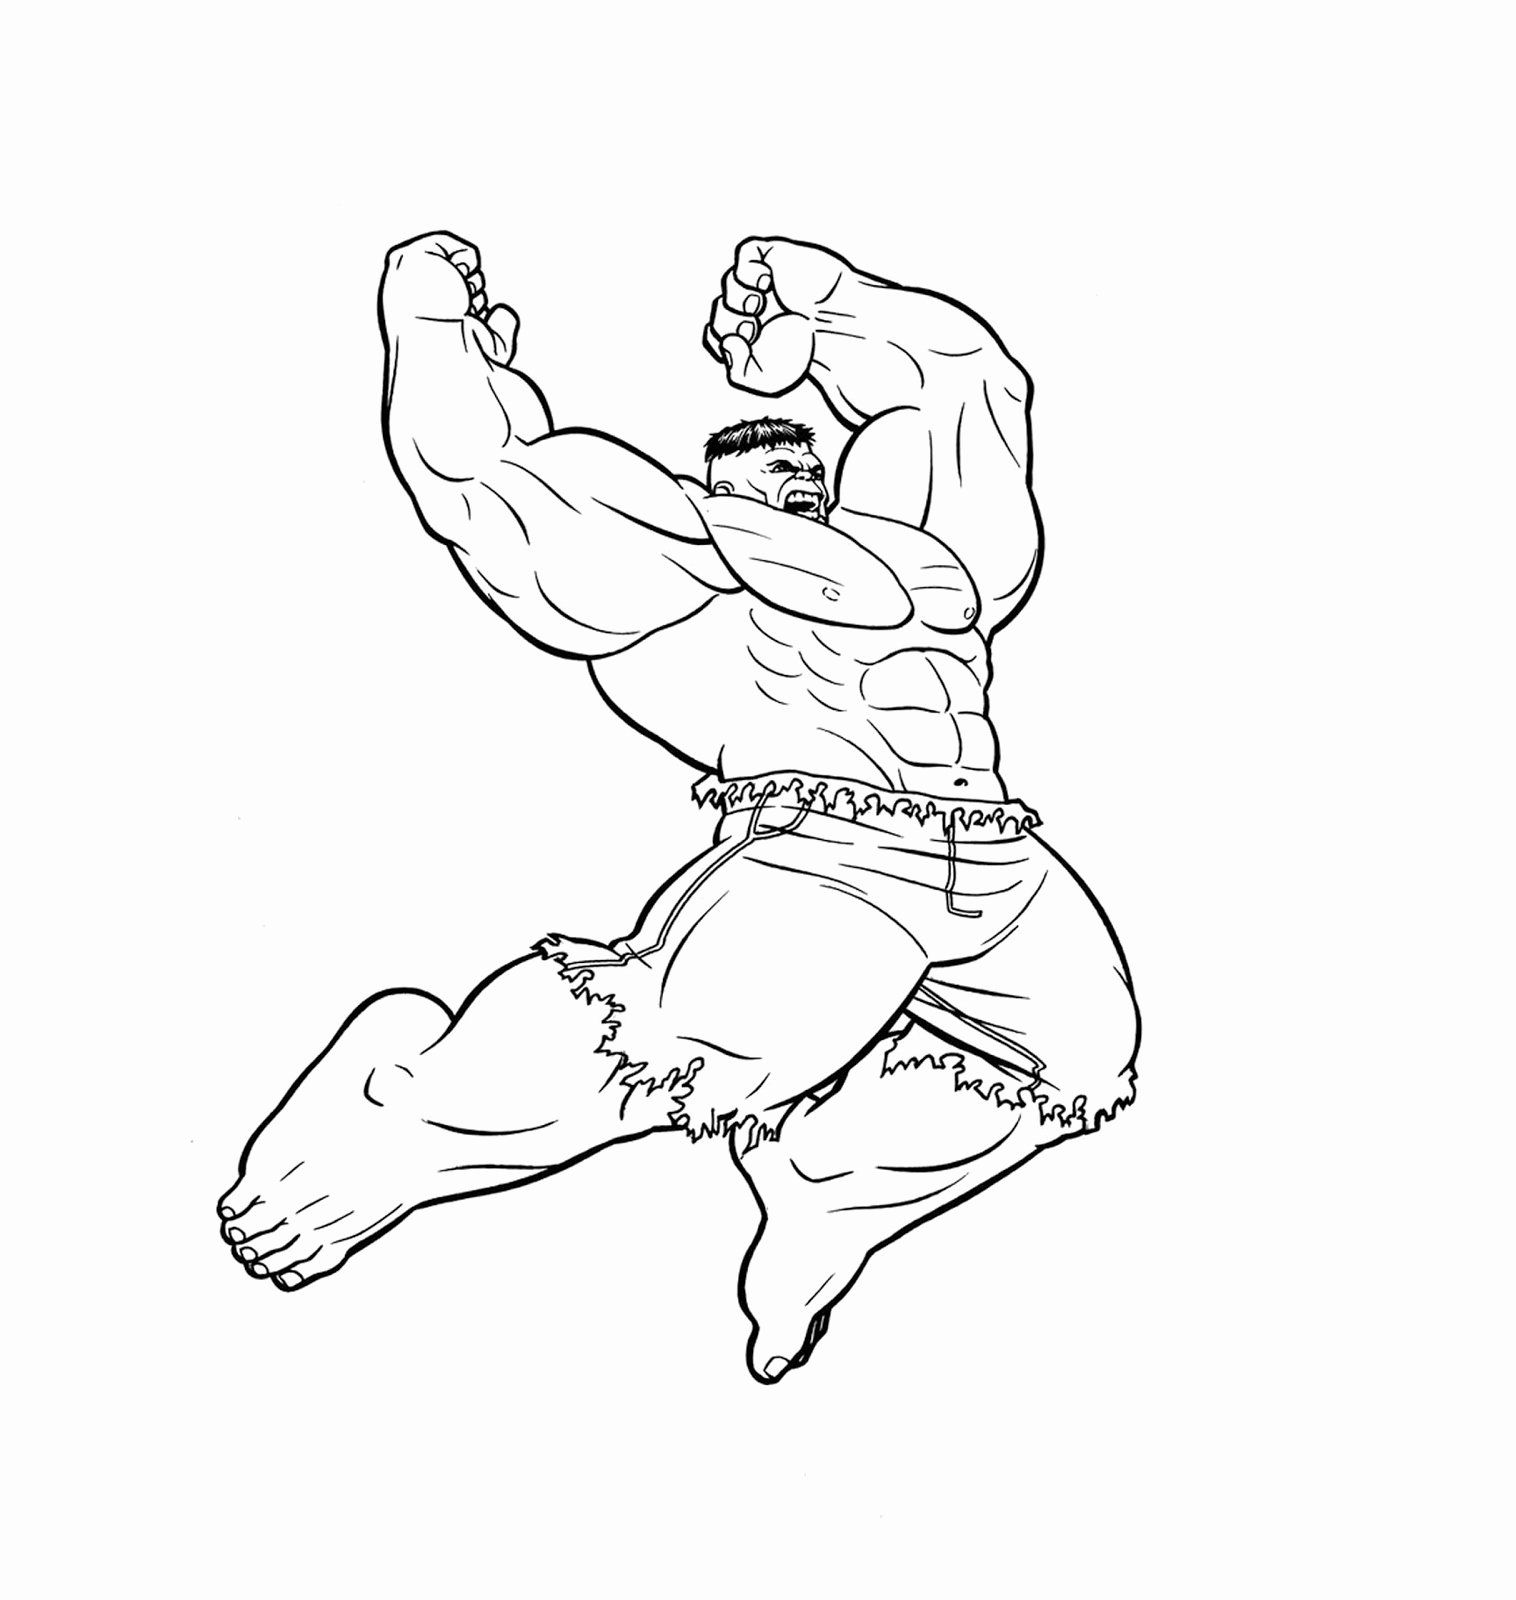 Super Heroes Coloring Page Inspirational 12 Free Printable The Hulk Coloring Pages In 2020 Superhero Coloring Hulk Coloring Pages Pokemon Coloring Pages